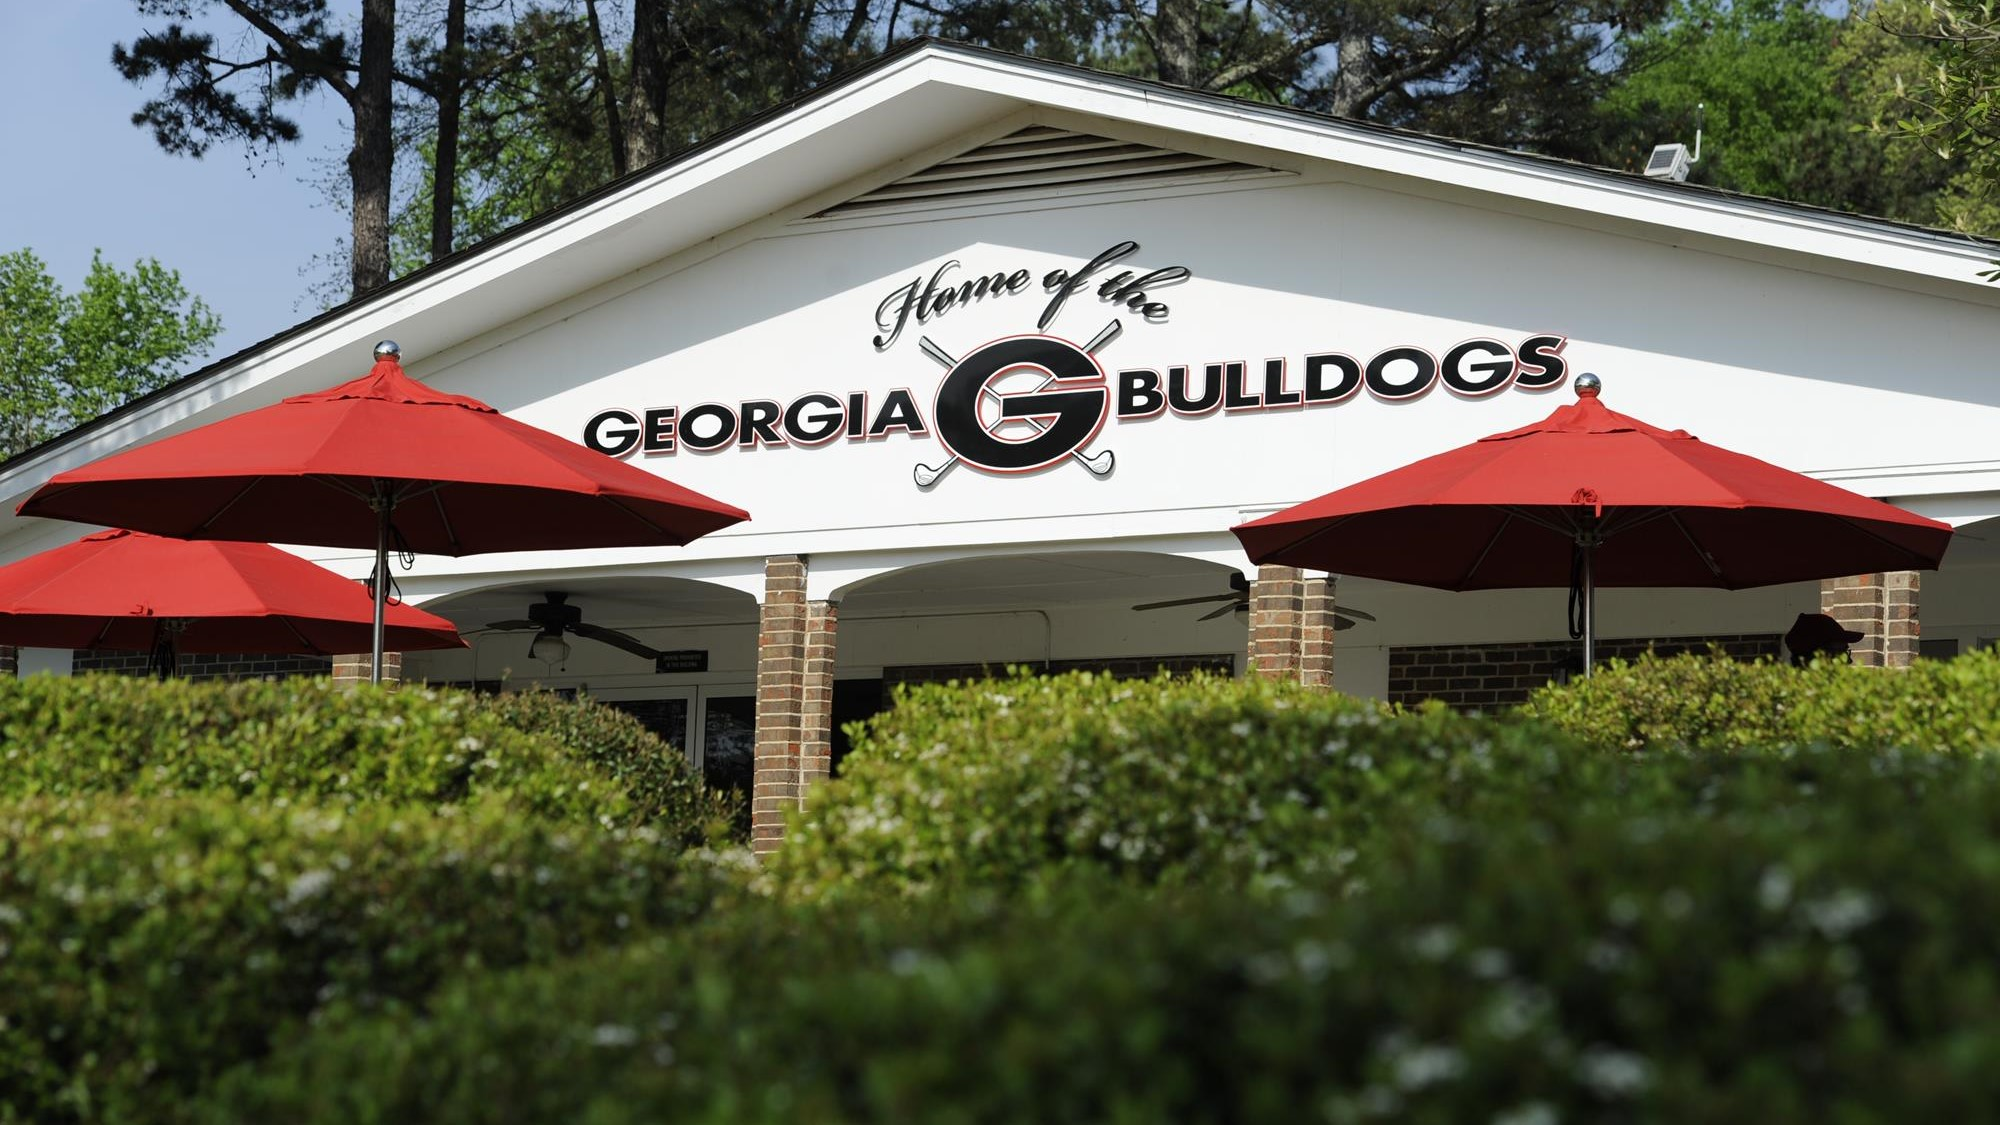 Jones Kahlstorf Phillips Sign With Bulldogs & Jones Kahlstorf Phillips Sign With Bulldogs - University of Georgia